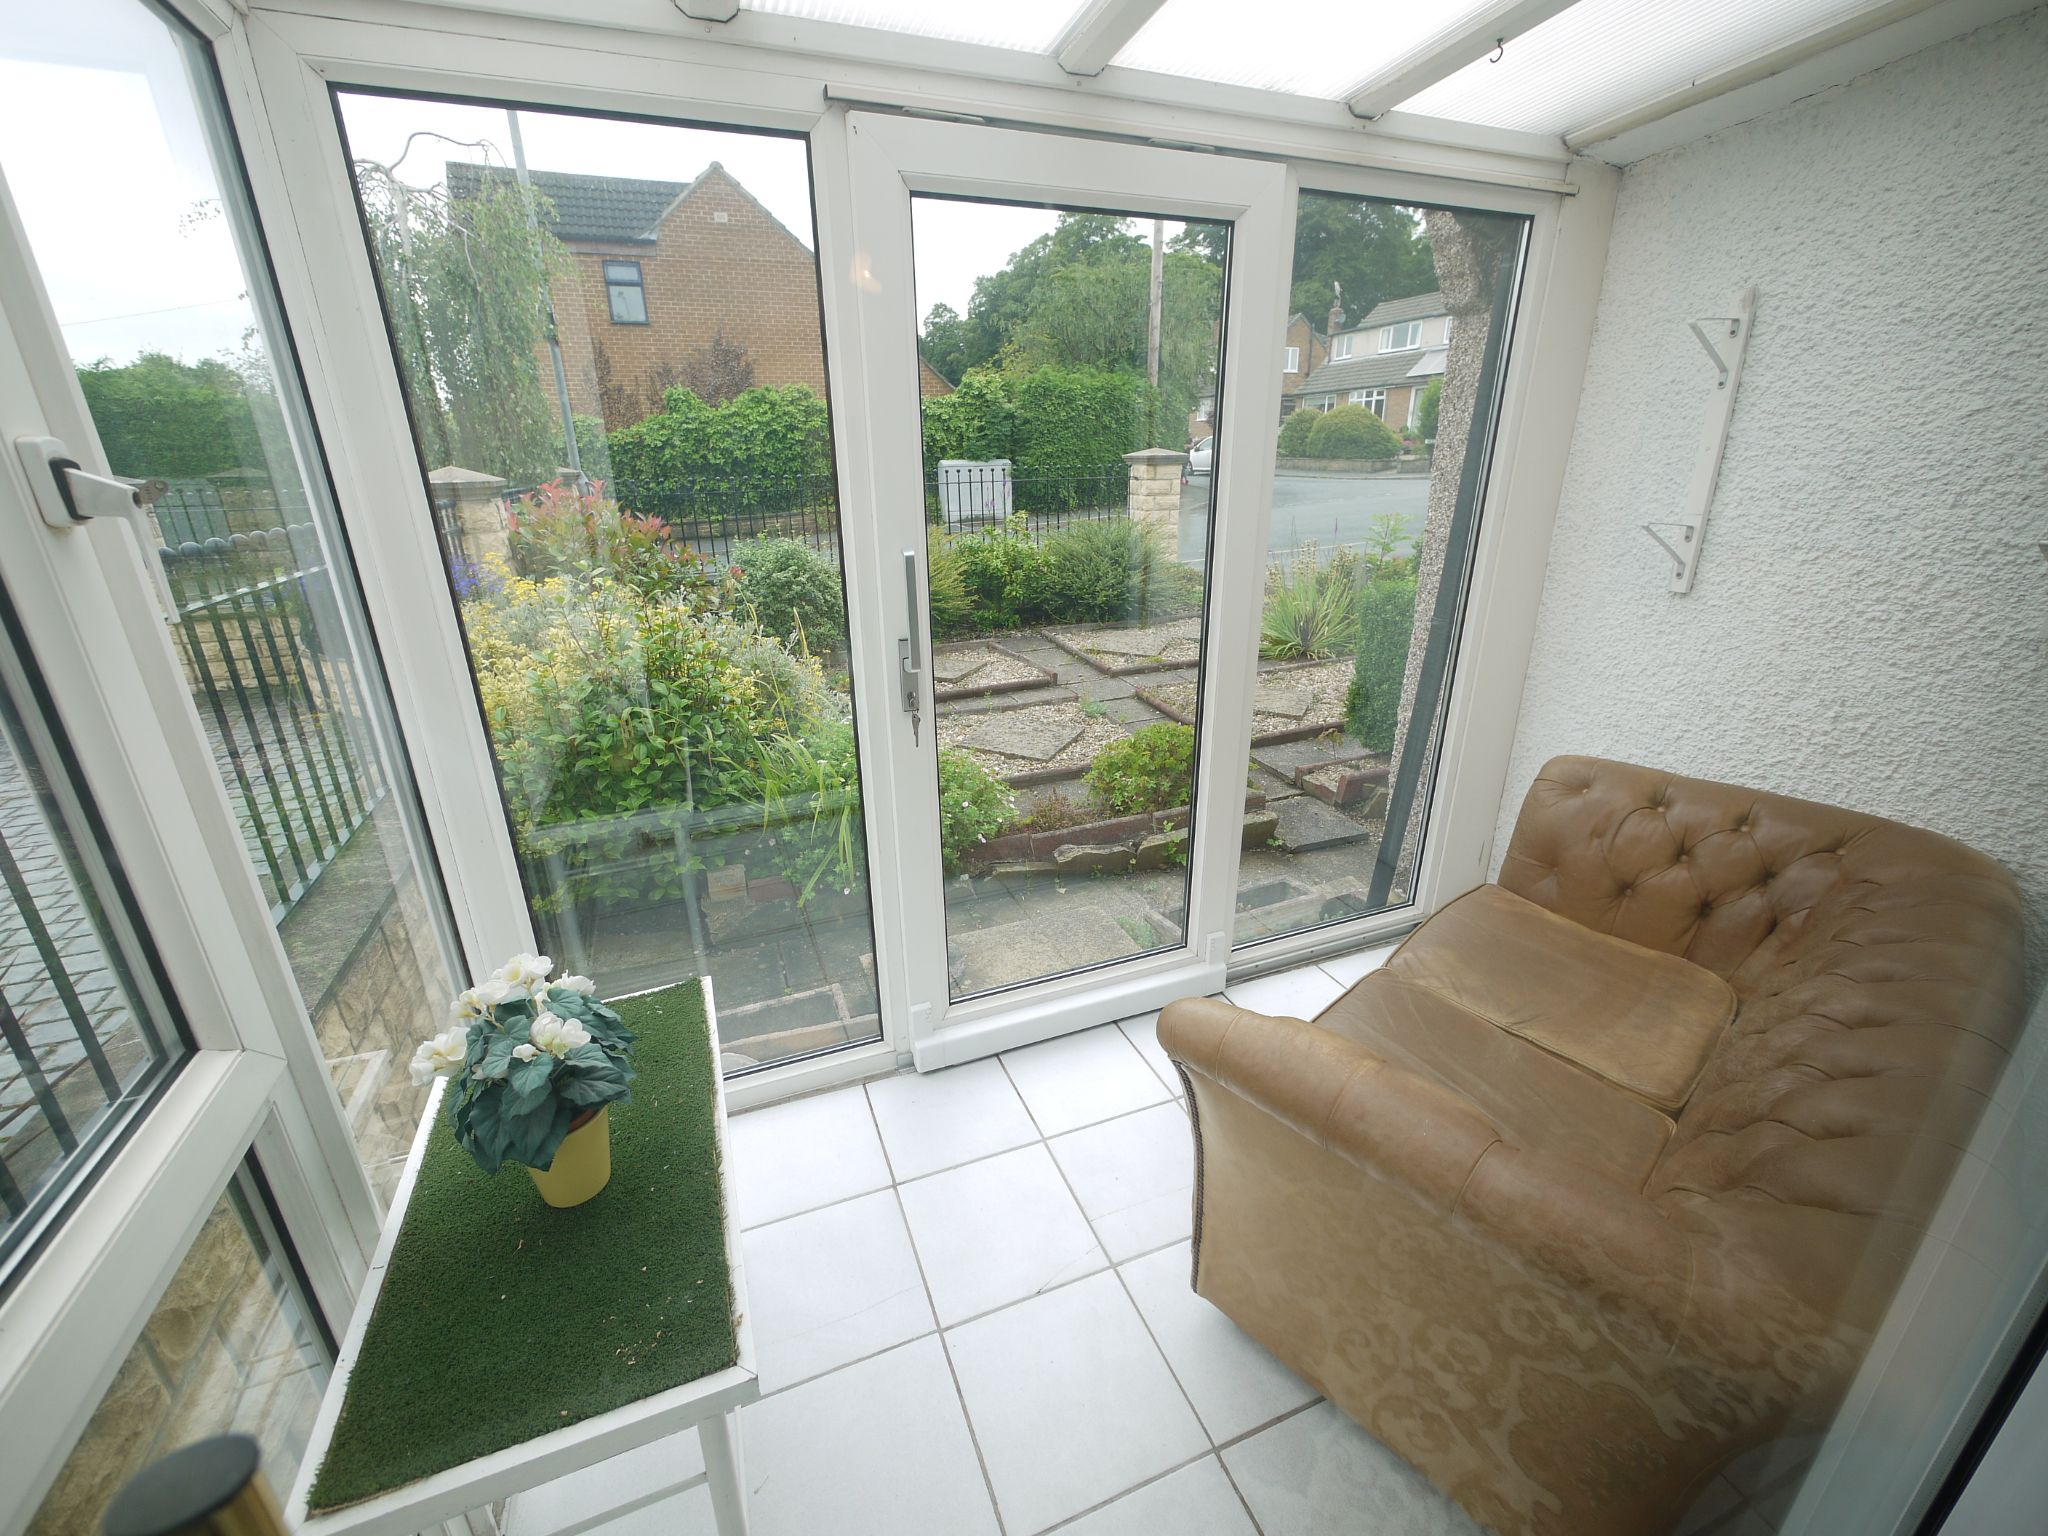 2 bedroom semi-detached bungalow SSTC in Brighouse - Conservatory/Sun lounge.